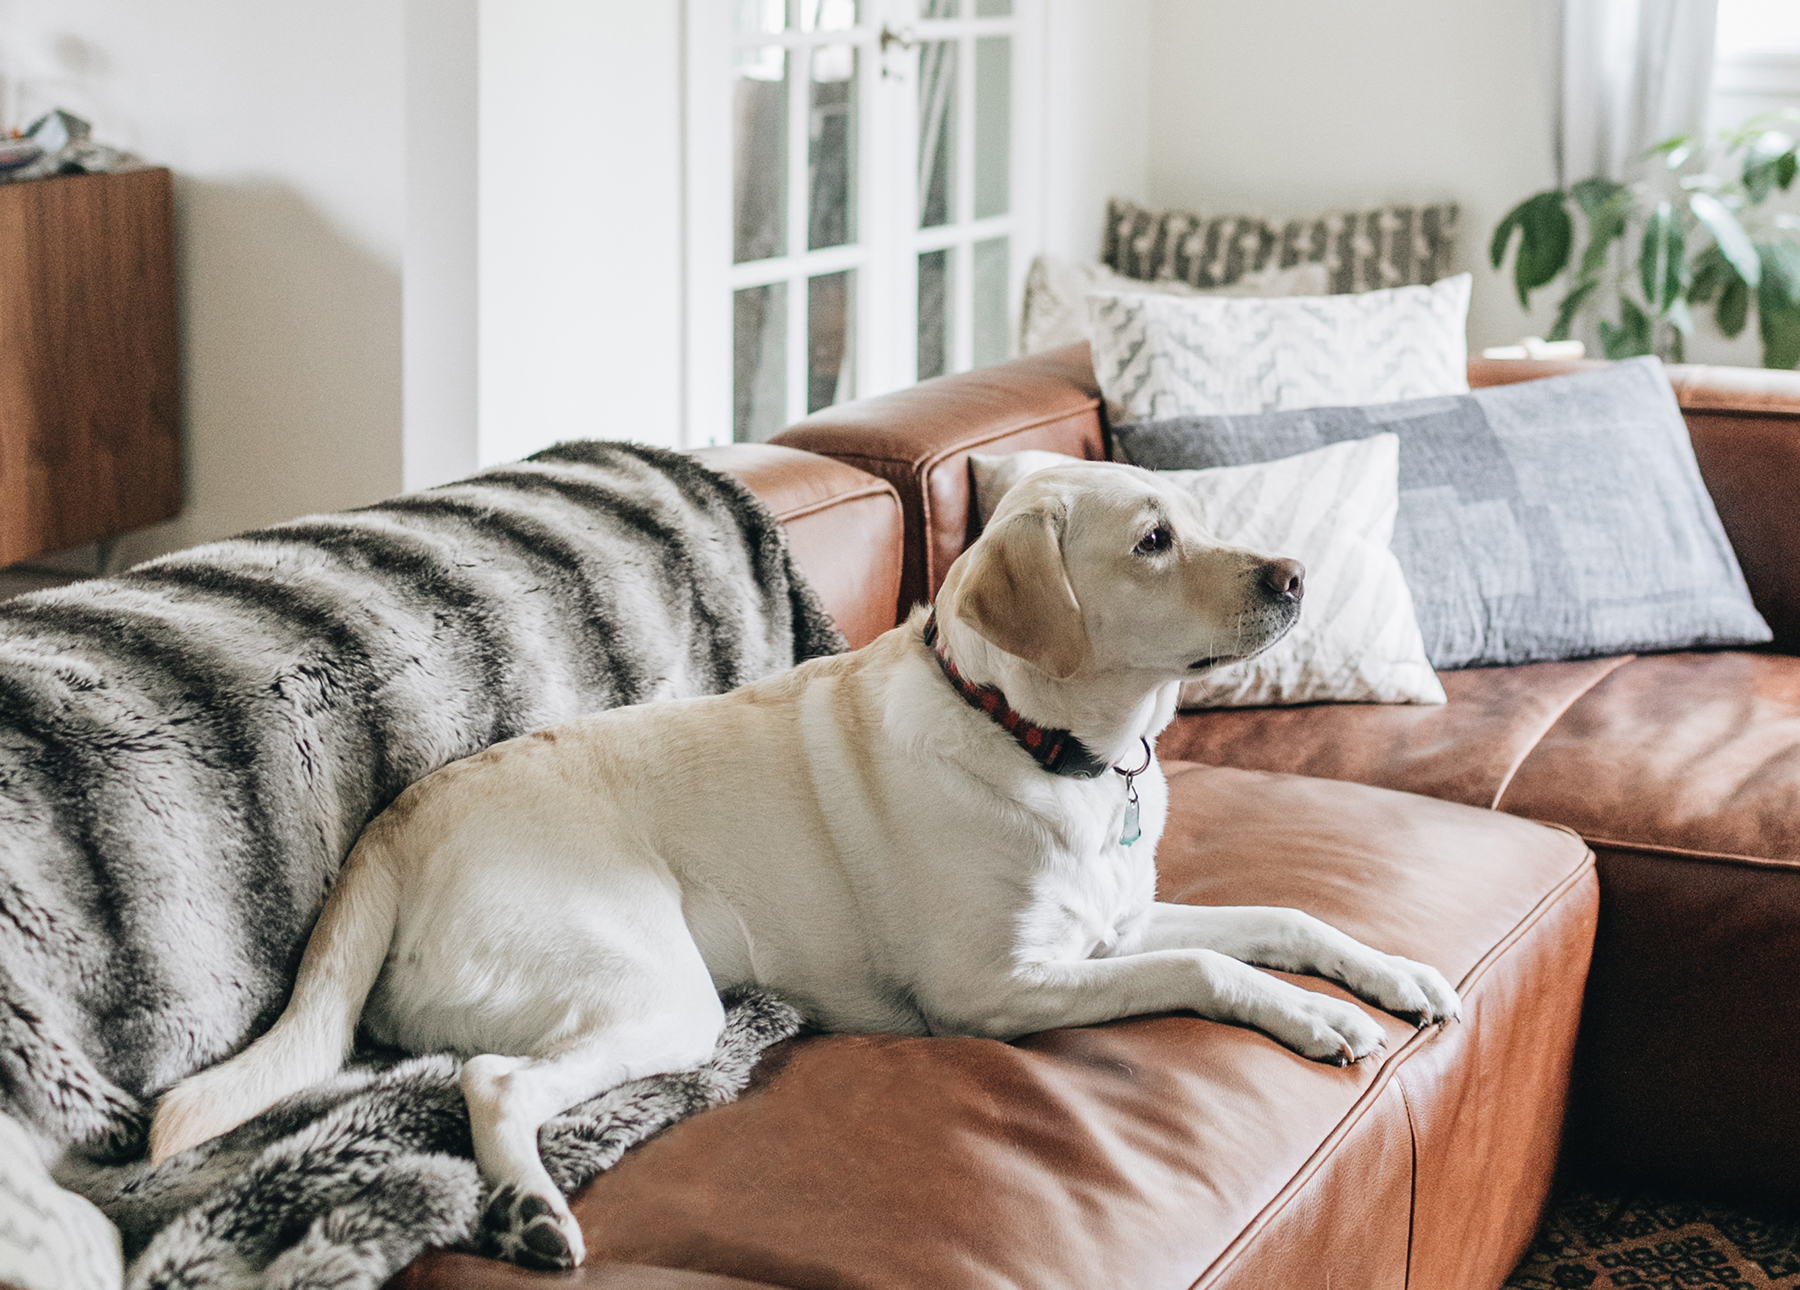 Sofa Leather Repair Toronto Leather Couch With Dogs A Lament And A Cheat Sheet